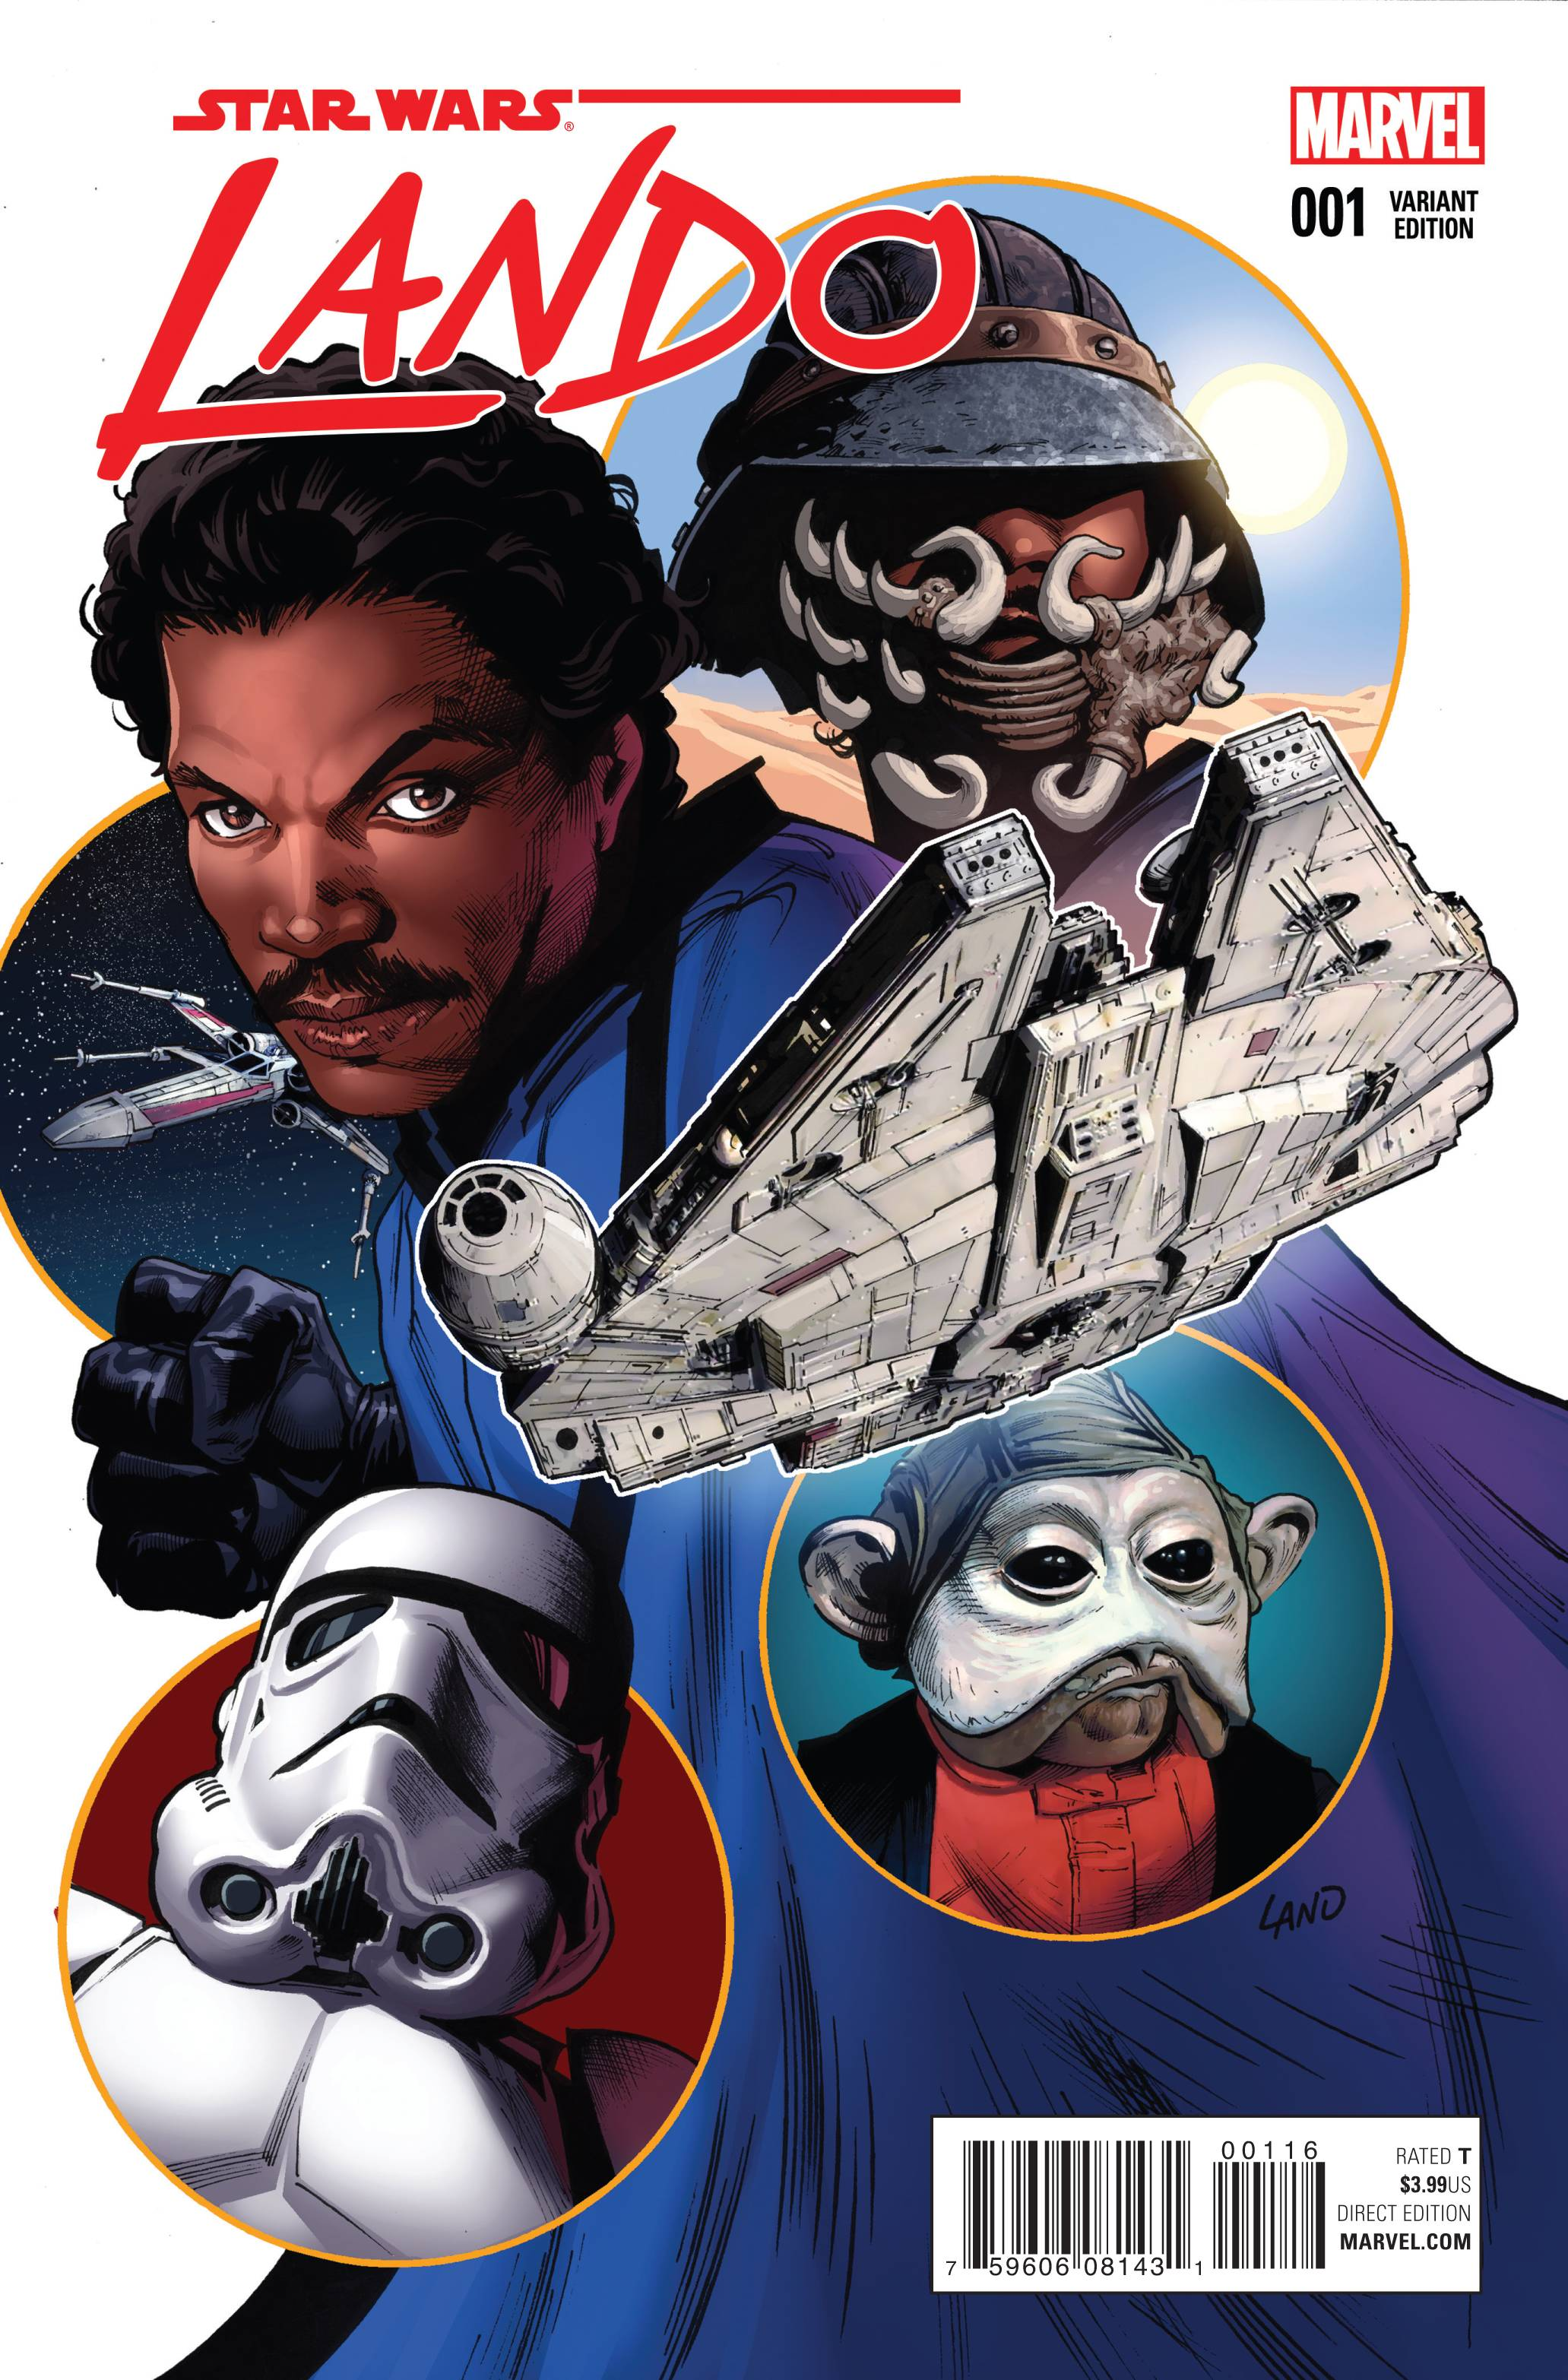 Star Wars Lando #1 Land Variant